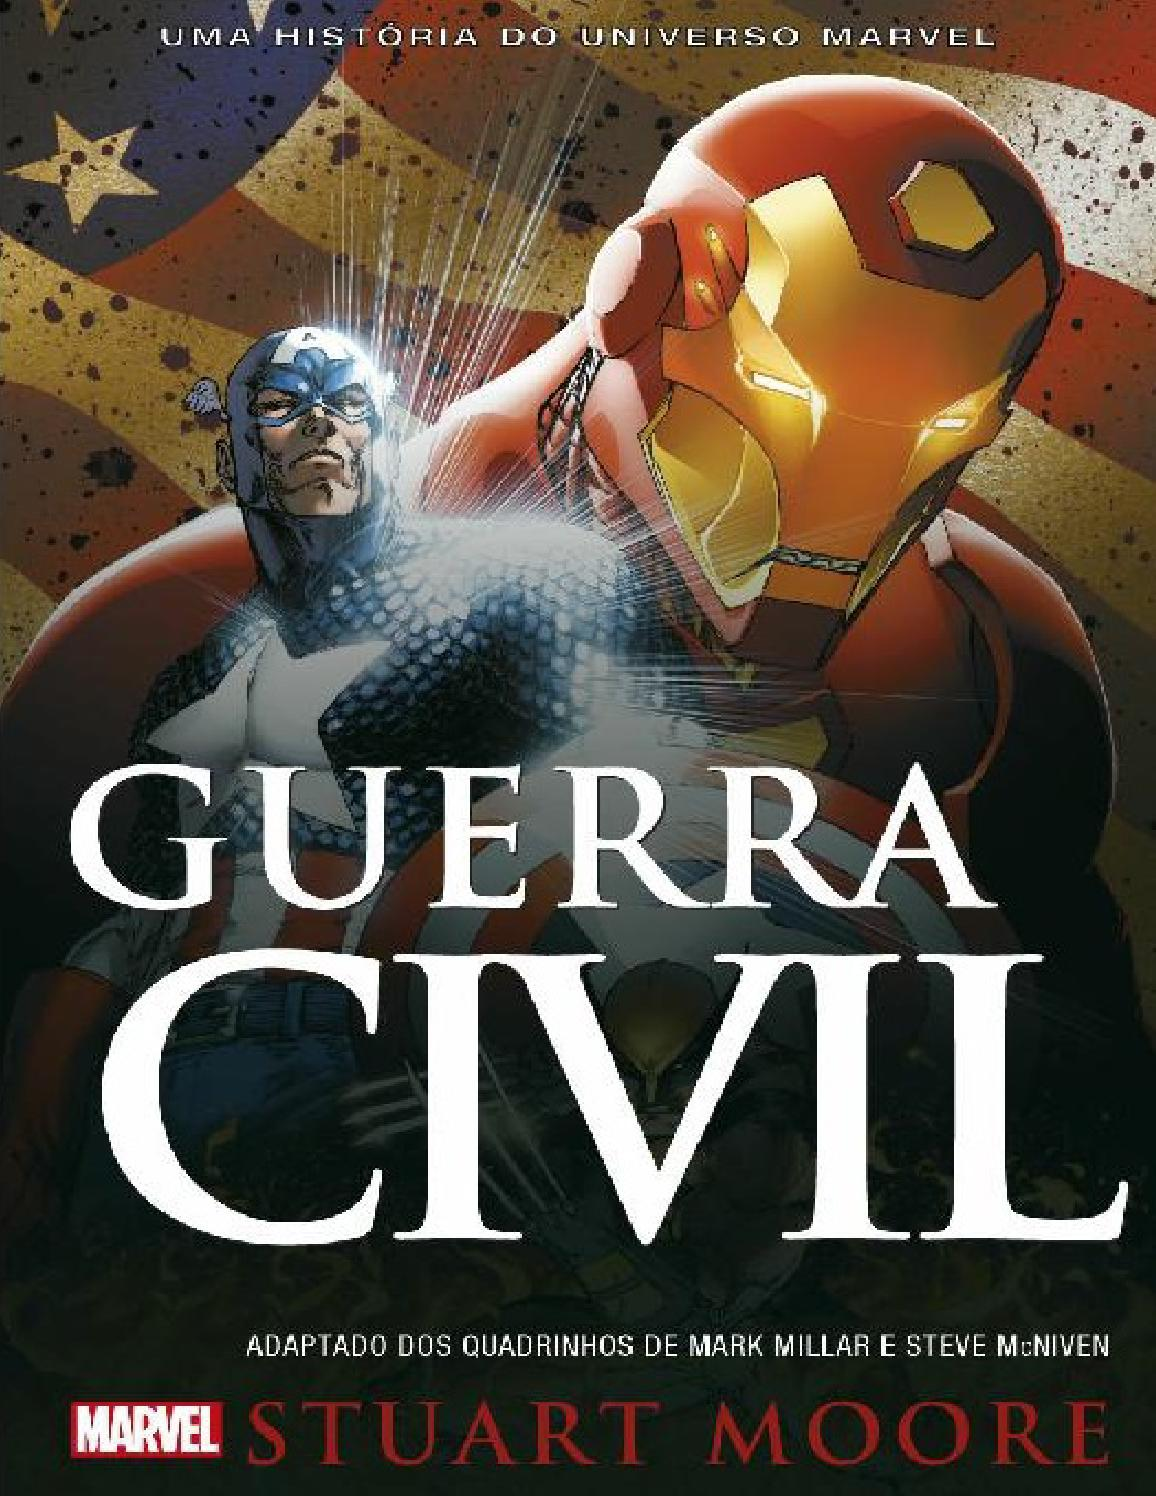 Guerra civil uma historia do stuart moore by Drika - issuu a601075392e